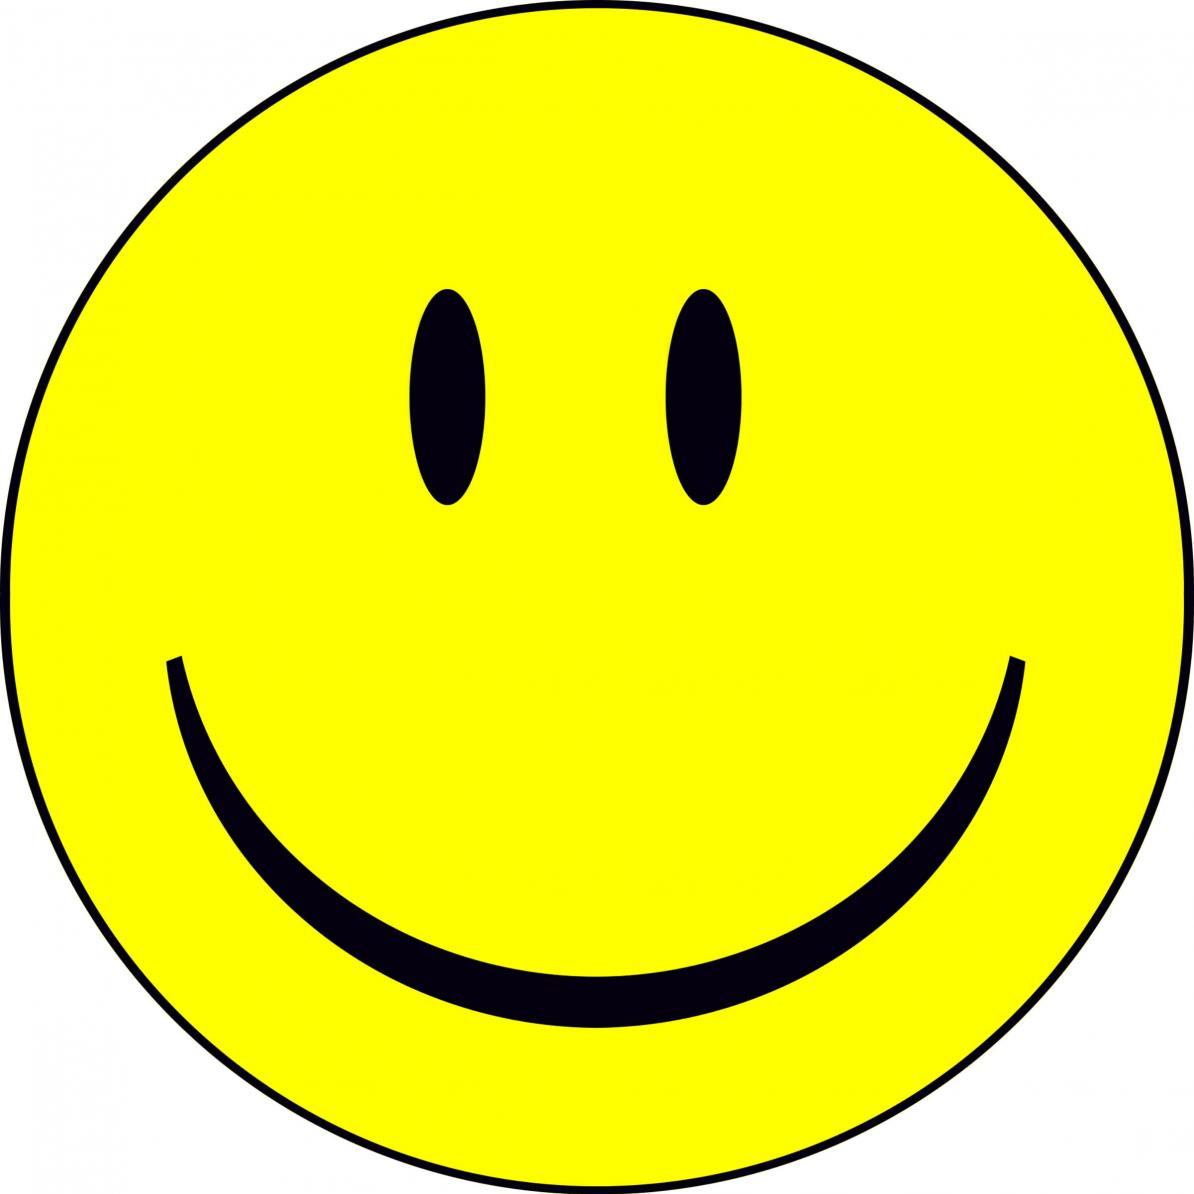 Smiley clipart. Laughing face clip art